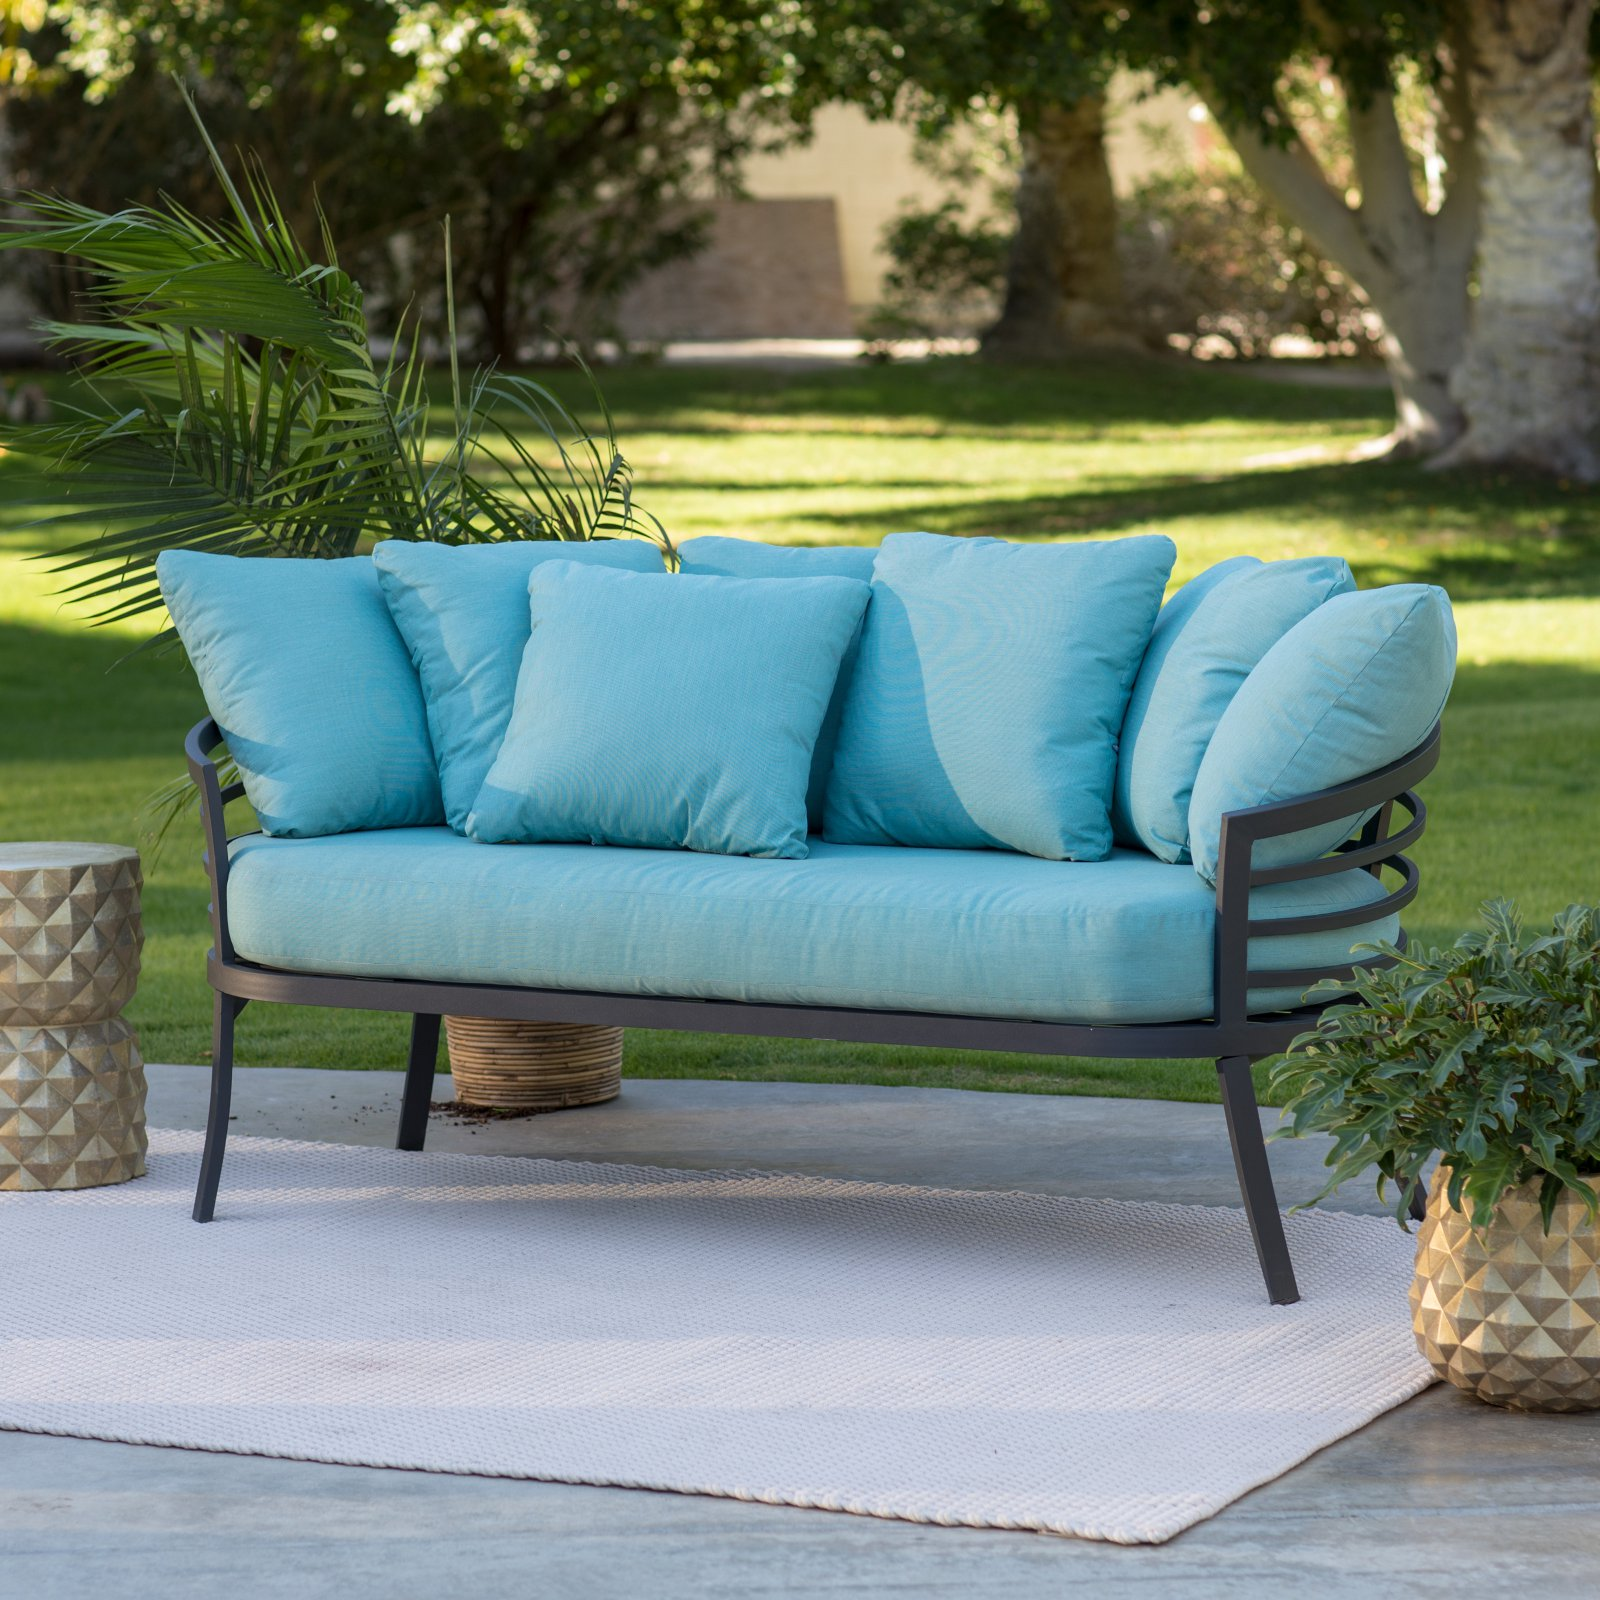 Salon Taupe Et Turquoise belham living parry bay aluminum 2 piece outdoor daybed and ottoman set